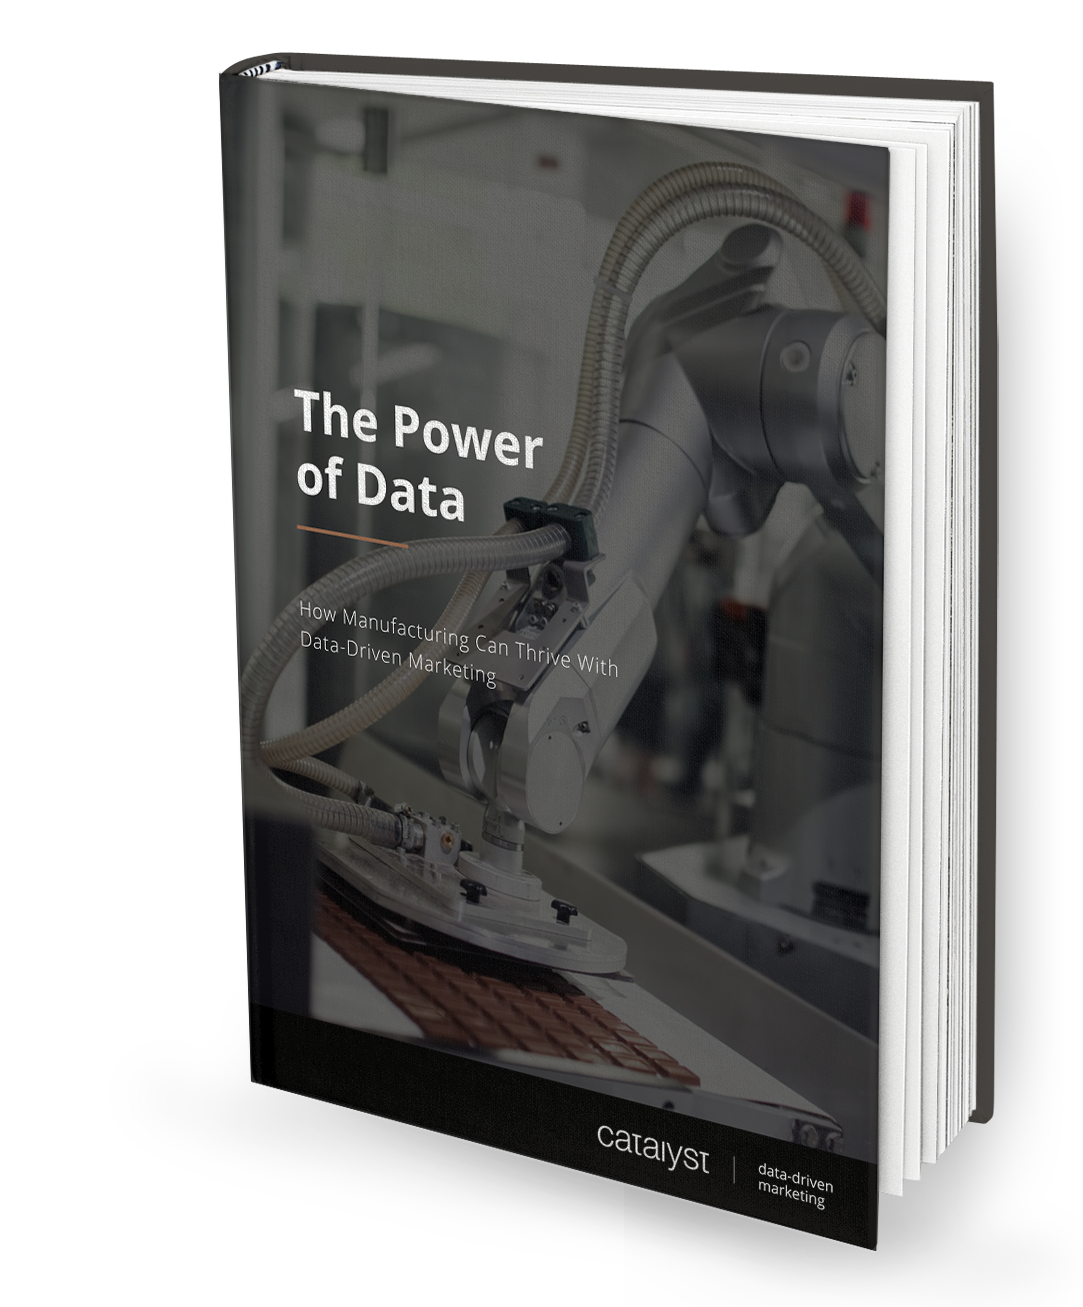 The_Power_of_Data_cover-mockup.png